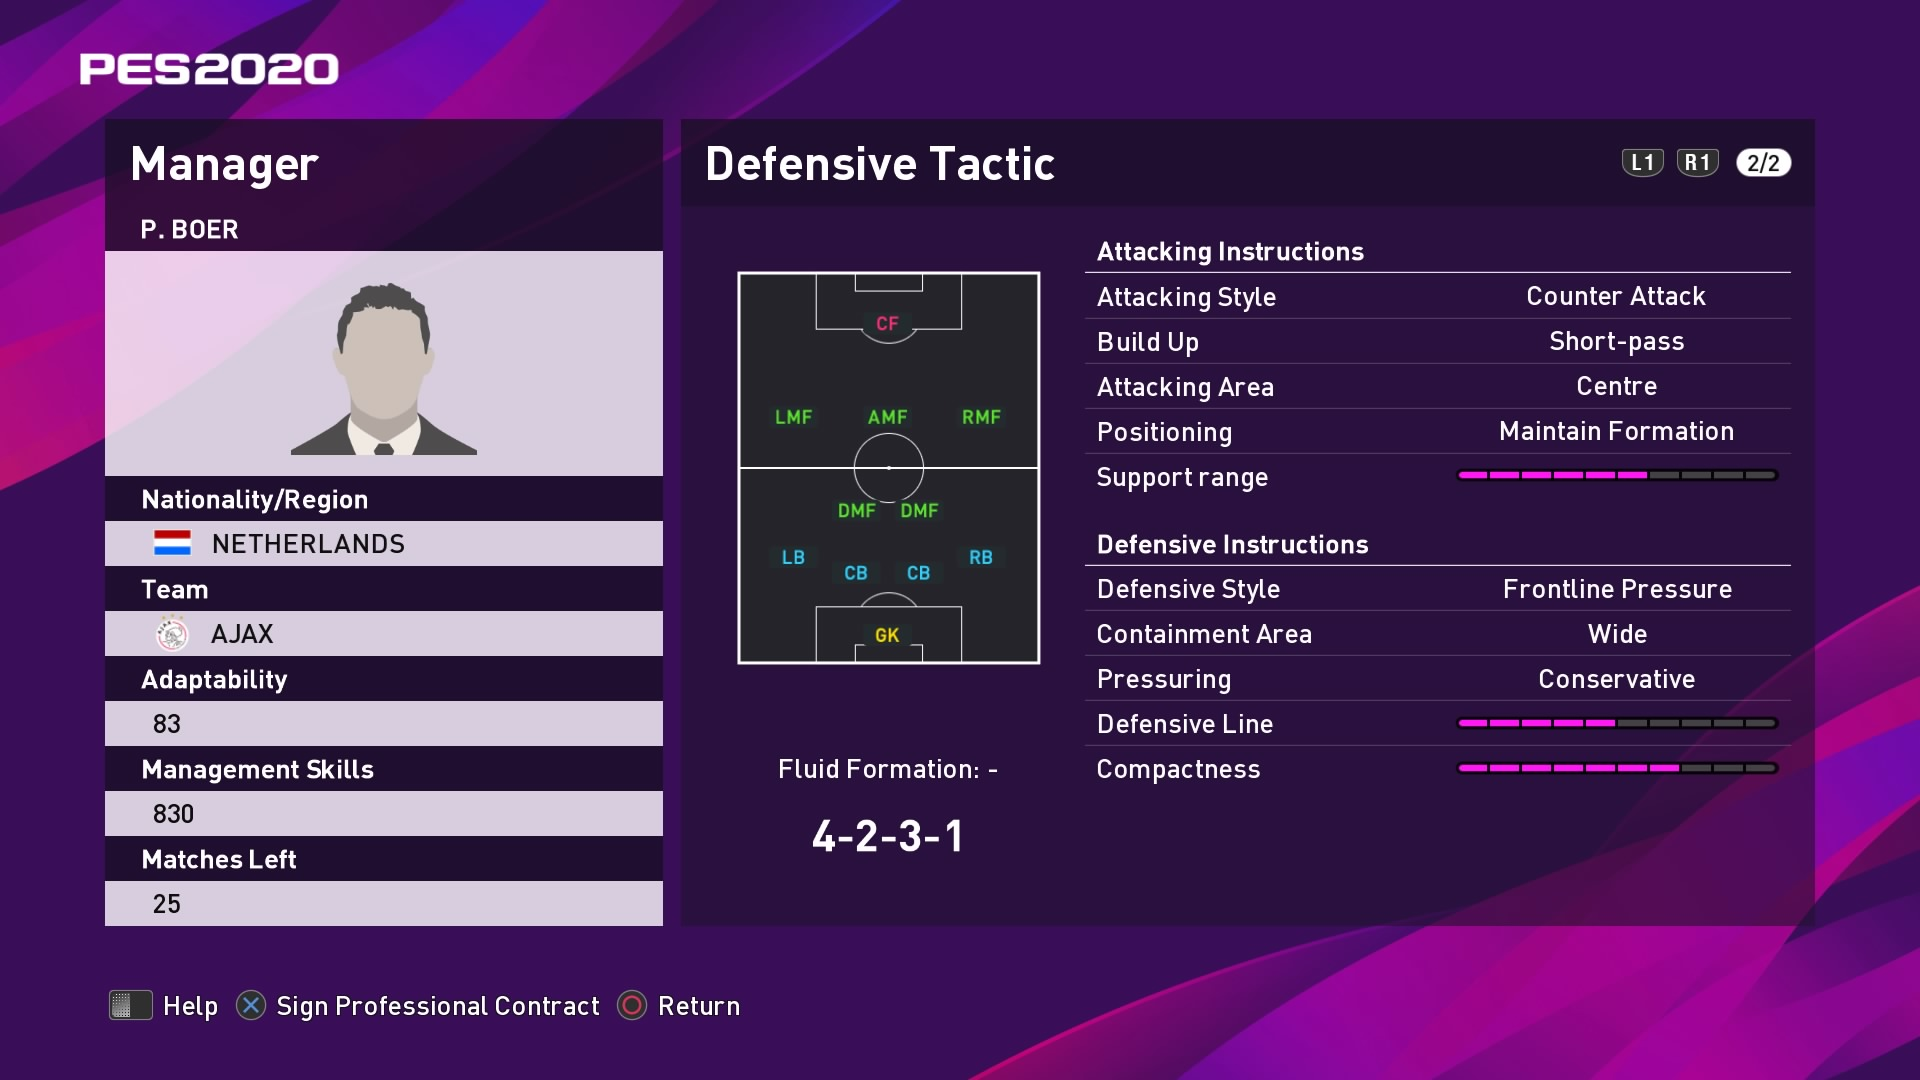 P. Boer (Erik ten Hag) Defensive Tactic in PES 2020 myClub